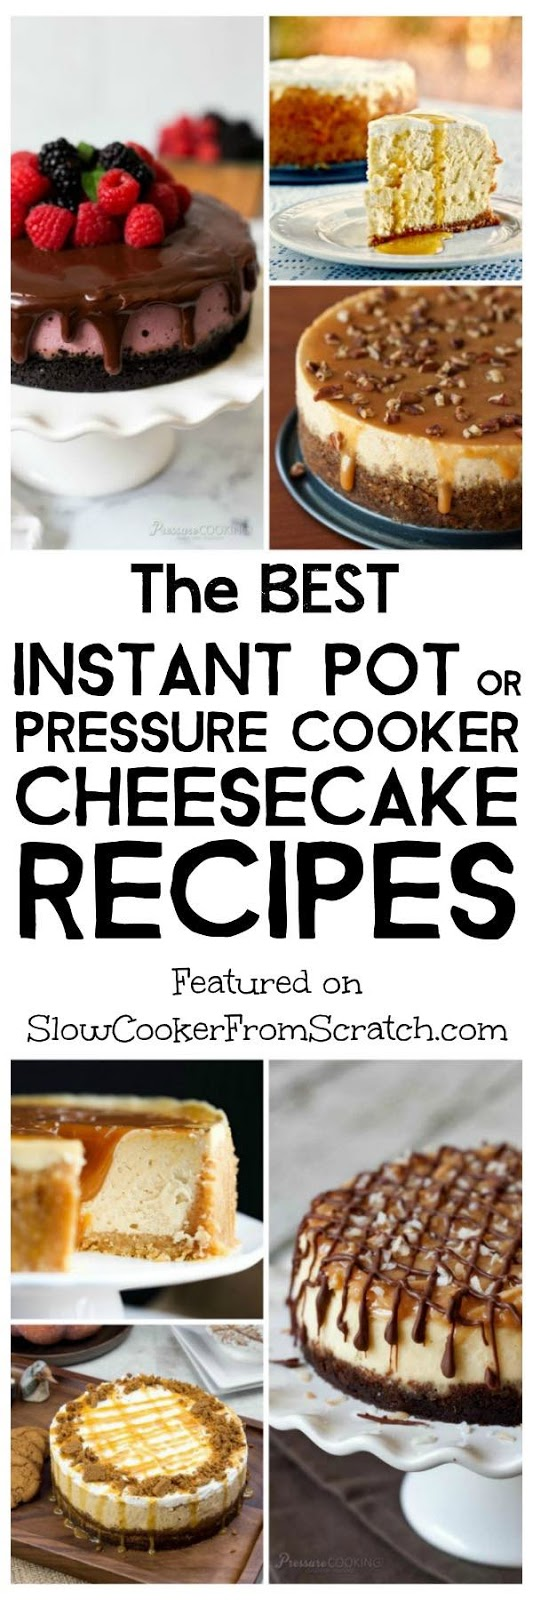 The Best Instant Pot Or Pressure Cooker Cheesecake Recipes